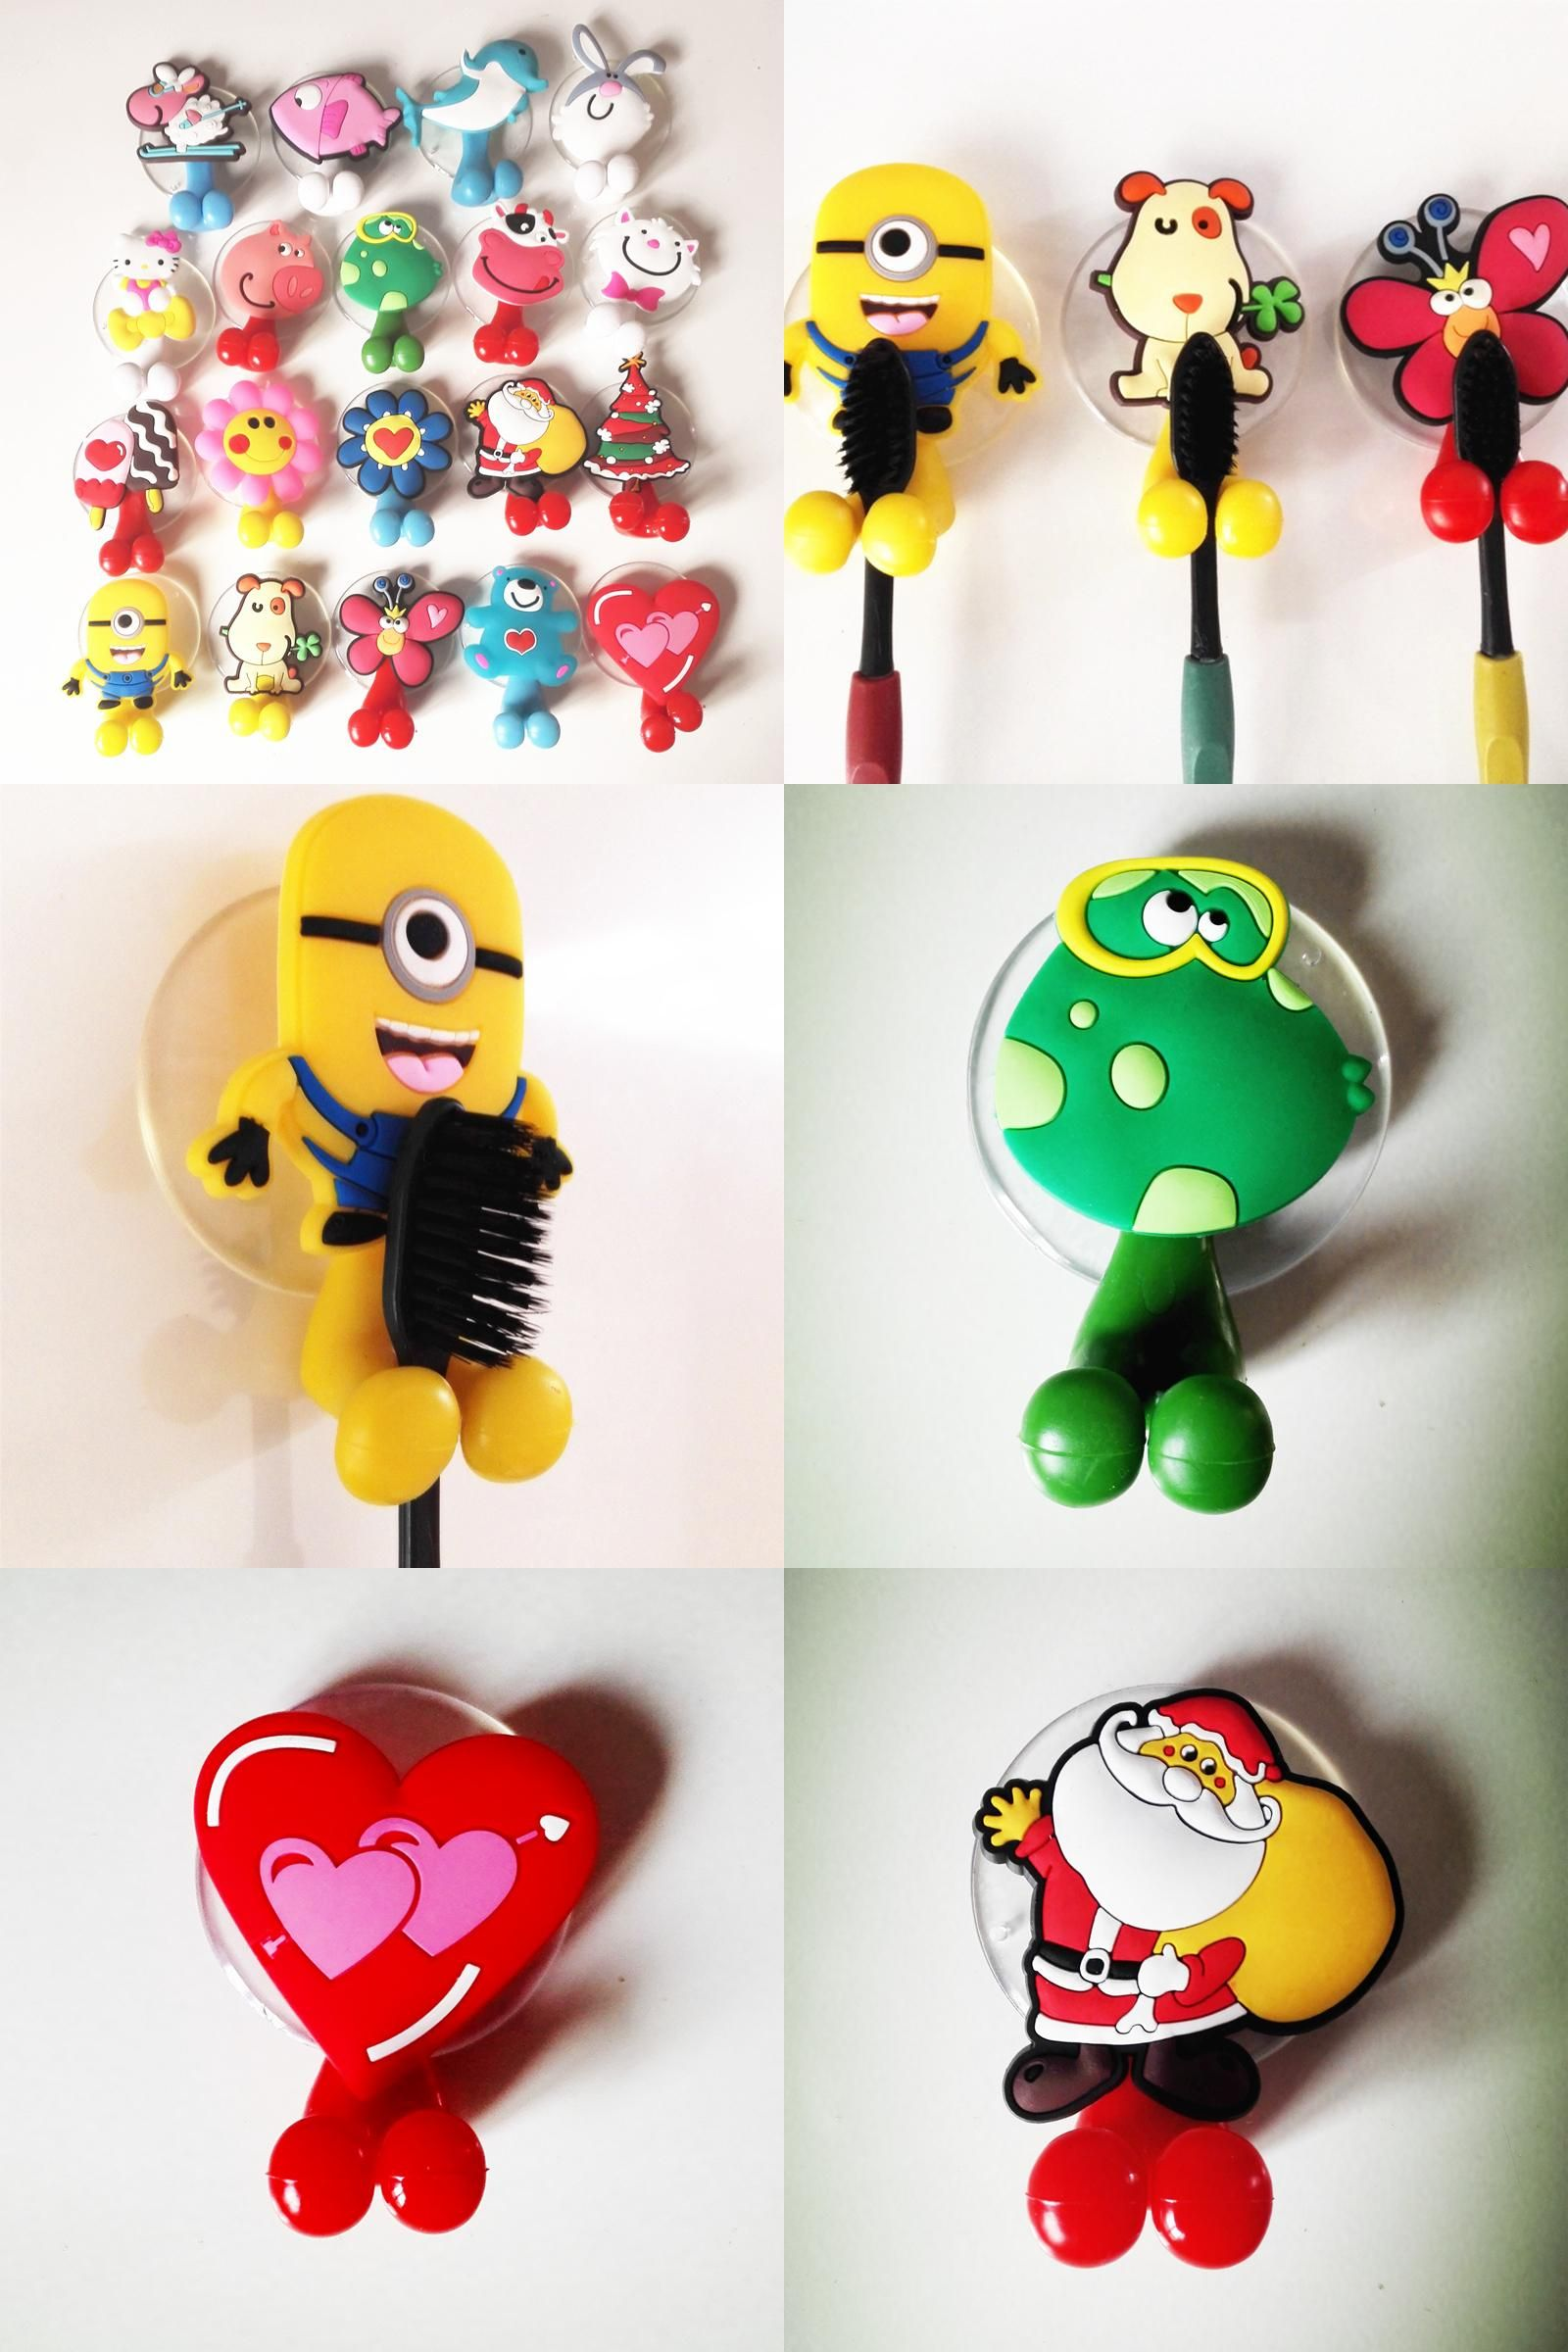 Visit To Buy Animal Cute Minion Hello Kitty Cartoon Suction Cup